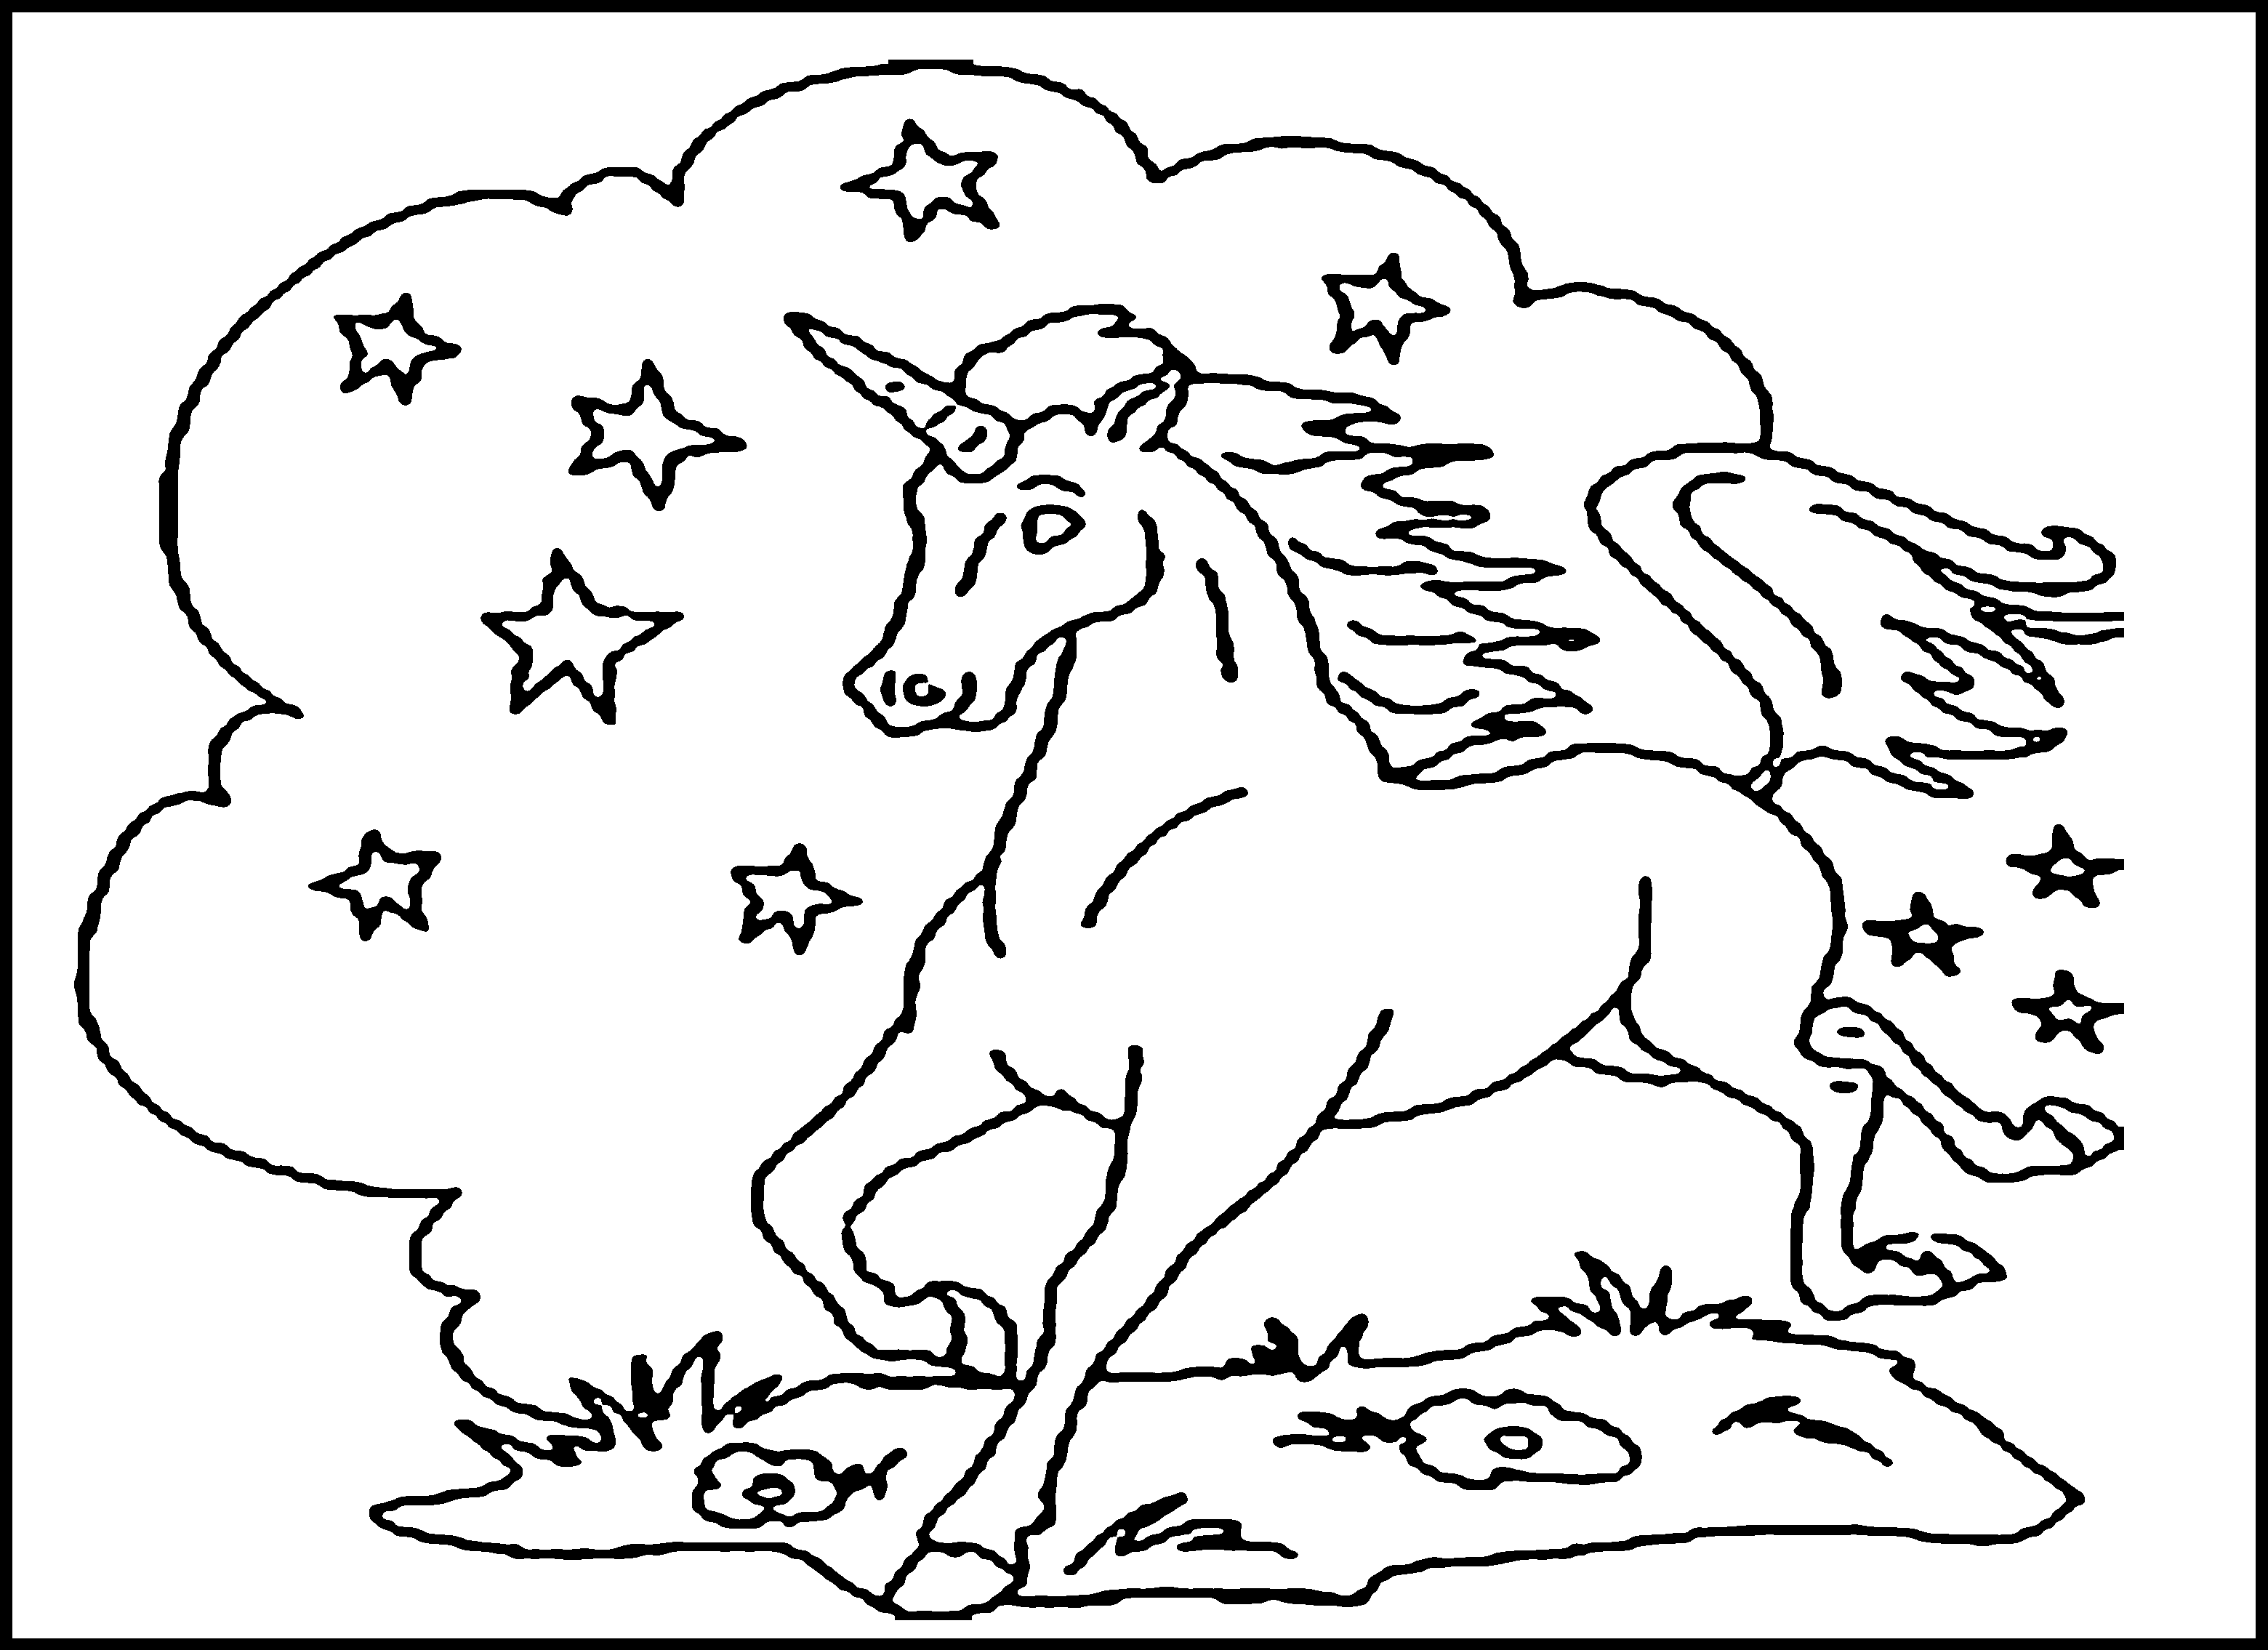 unicorn printable coloring pages - Colouring Pages To Print